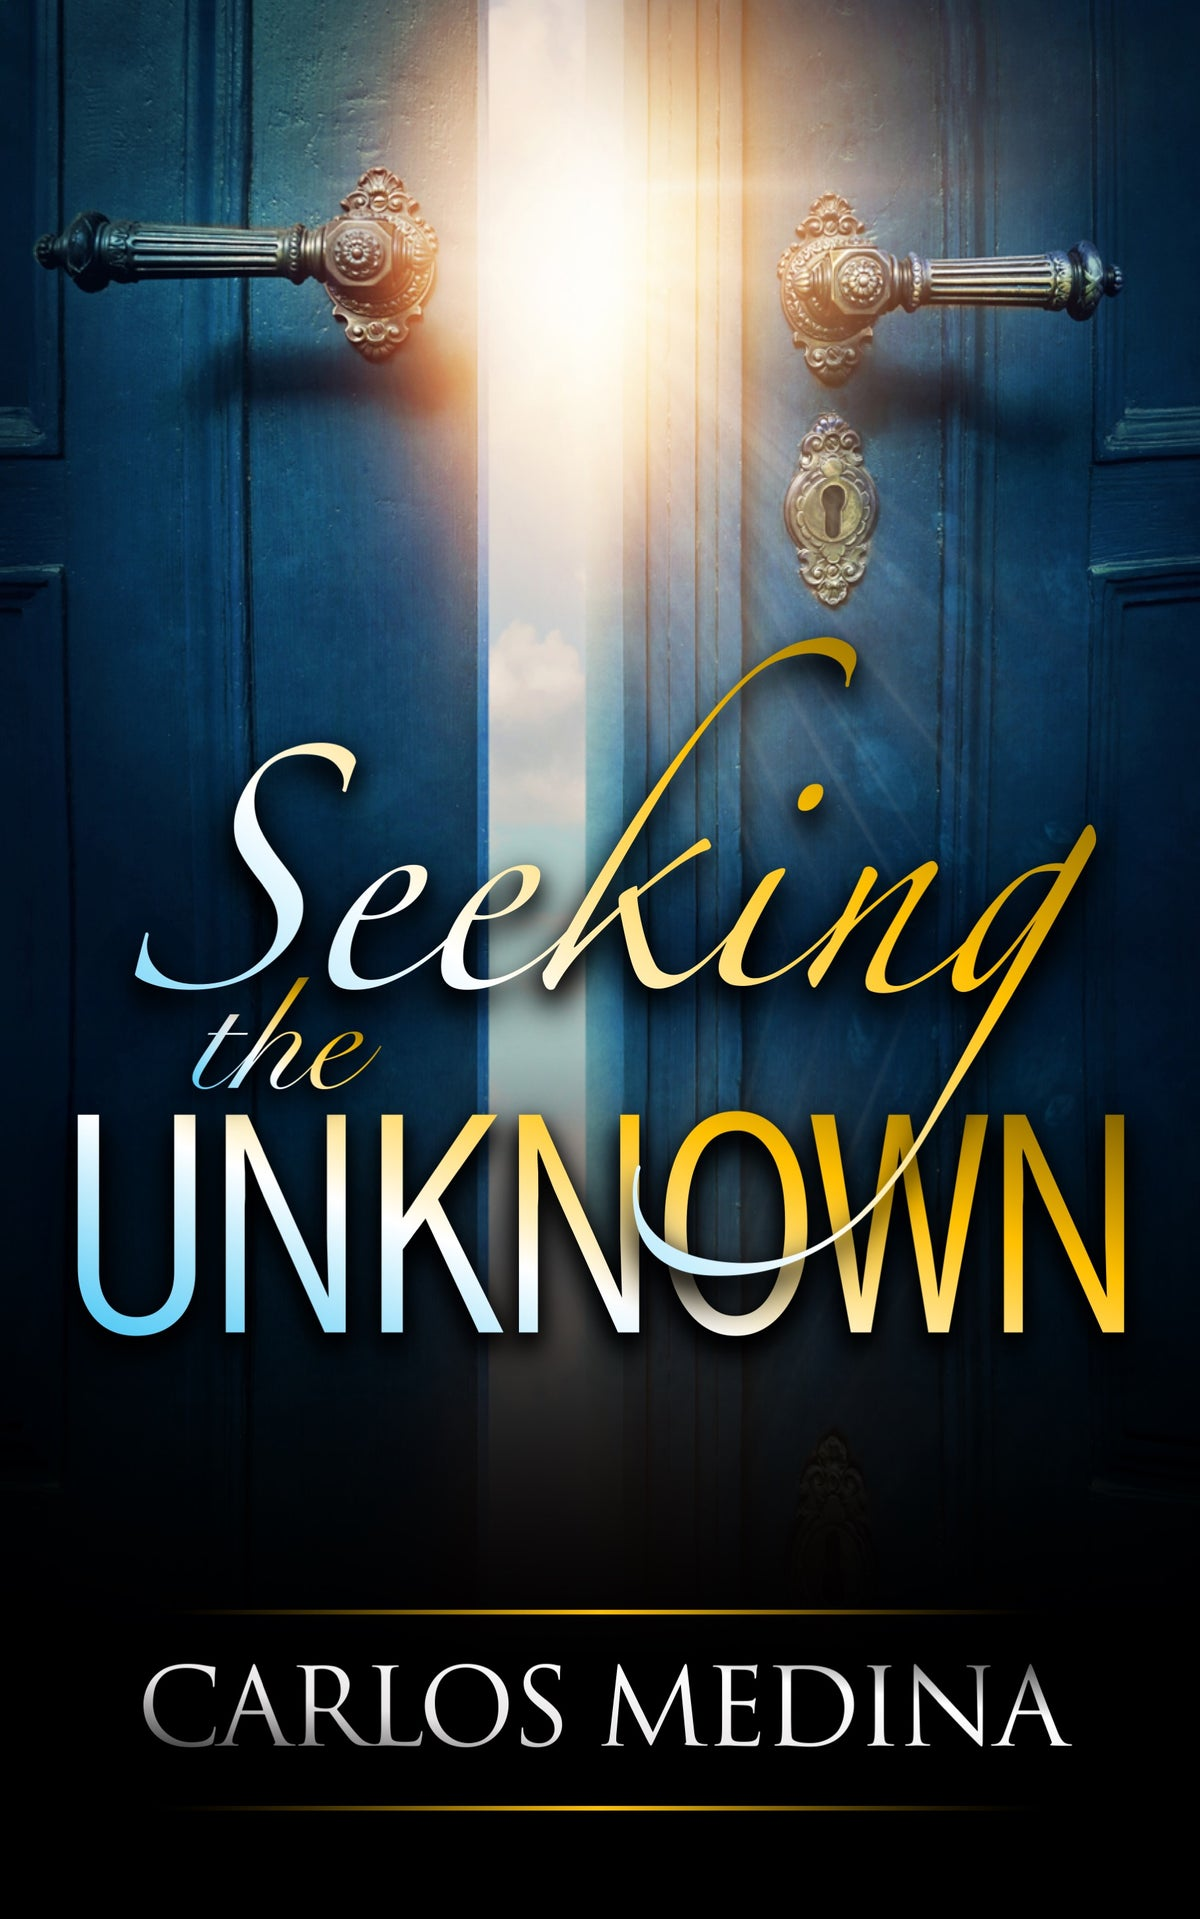 SEEKING THE UNKNOWN